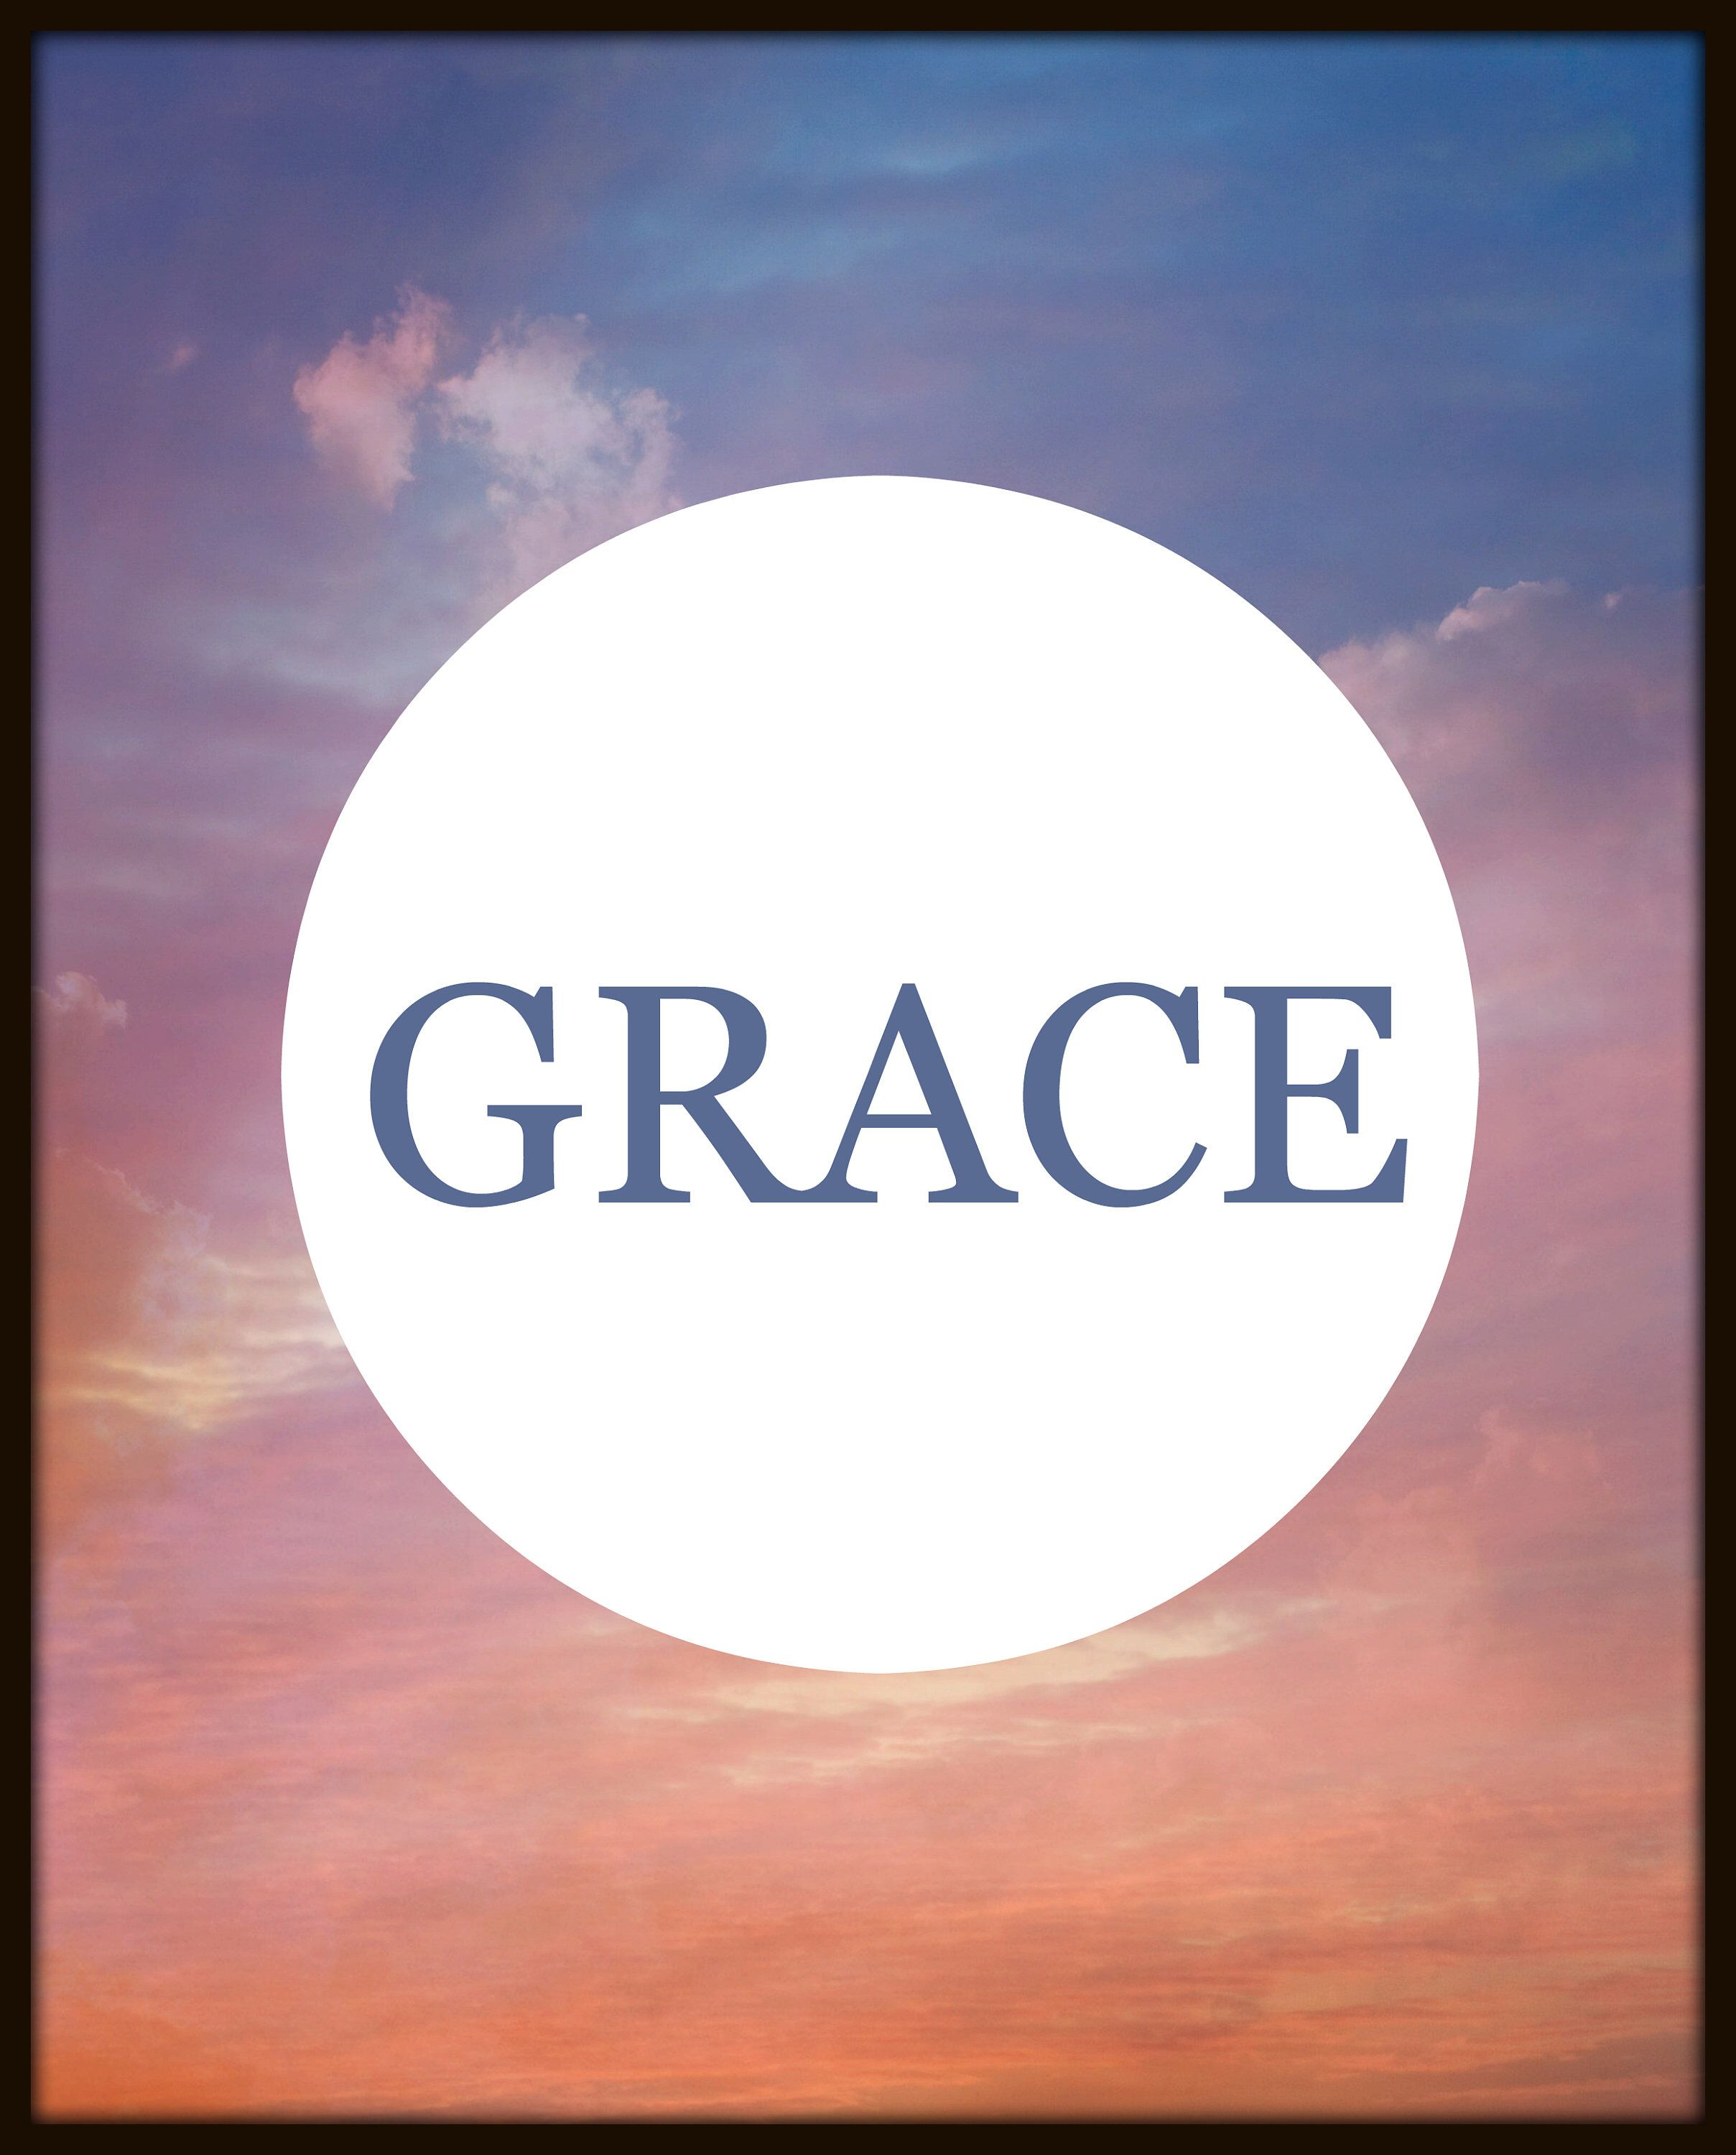 Grace will take you places that nothing else can grace one word